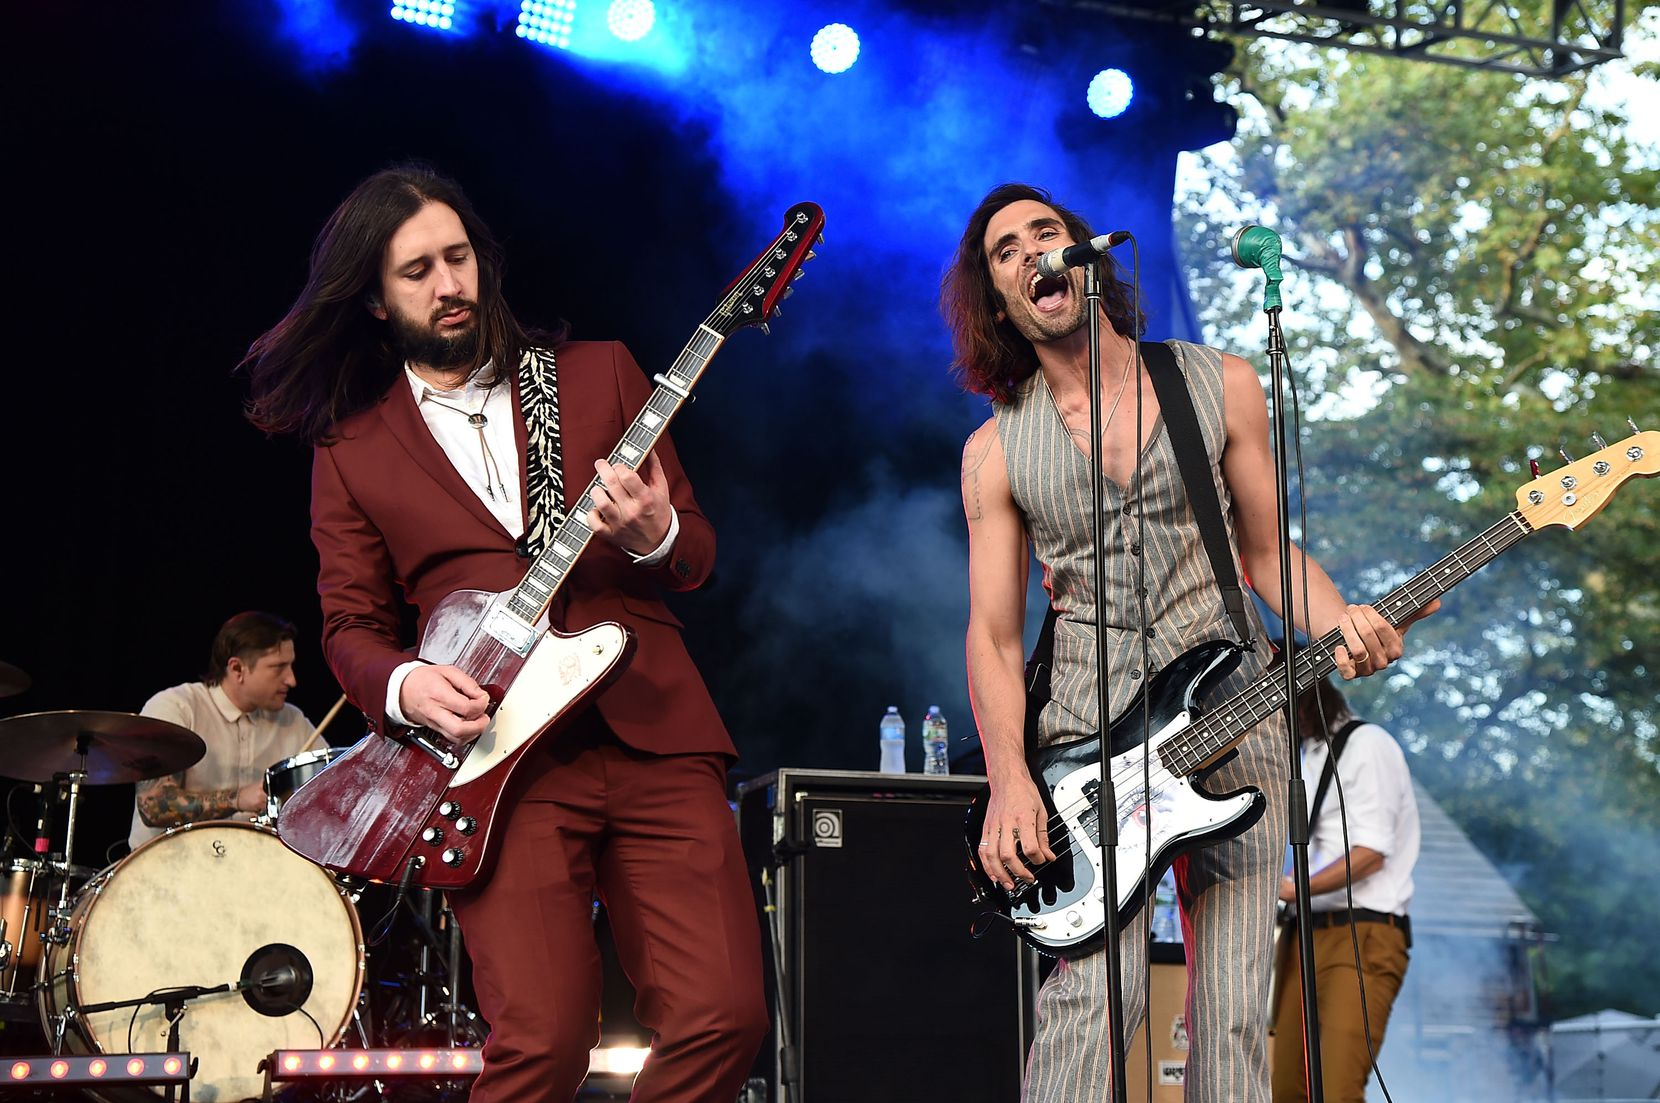 Nick Wheeler and Tyson Ritter of All-American Rejects perform in New York CIty's Central Park in 2017. The band will perform on Saturday, June 1, 2019 at Taste Addison.